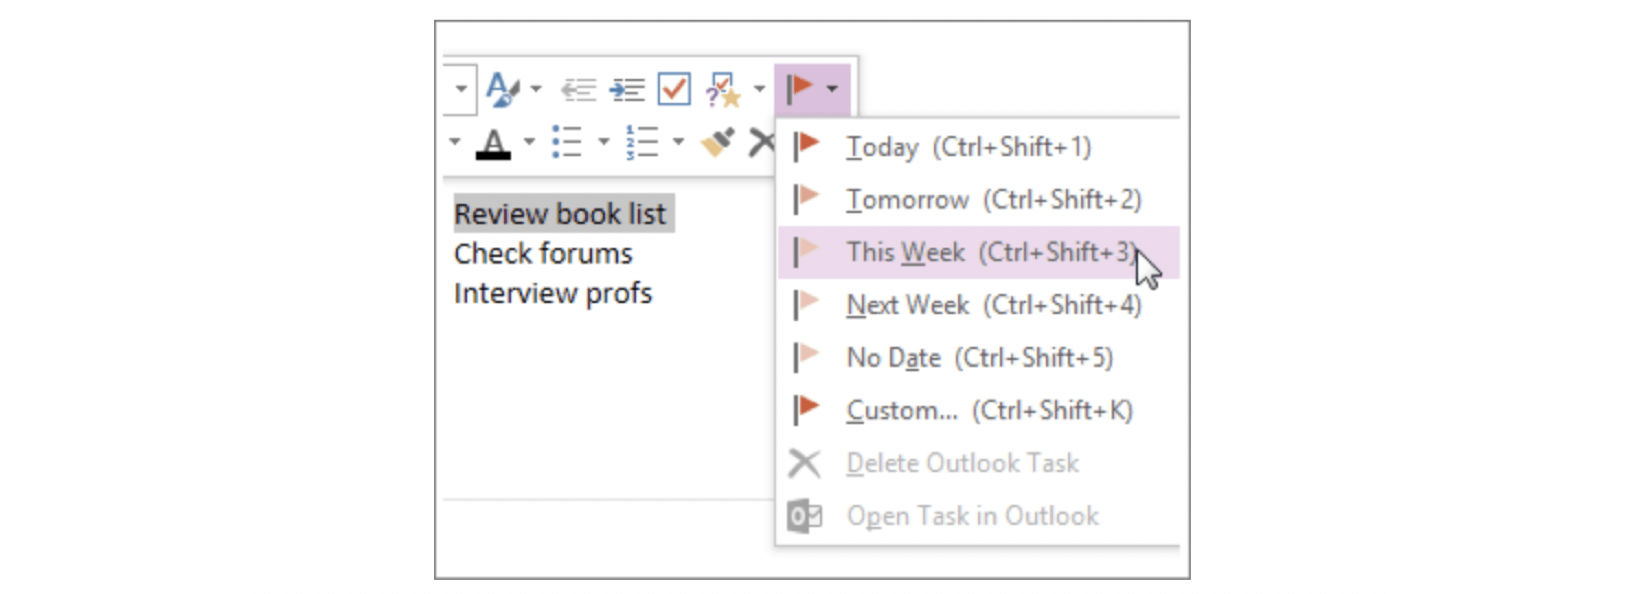 Cheat Sheet: Outlook, OneNote, To-Do, or Sticky Notes